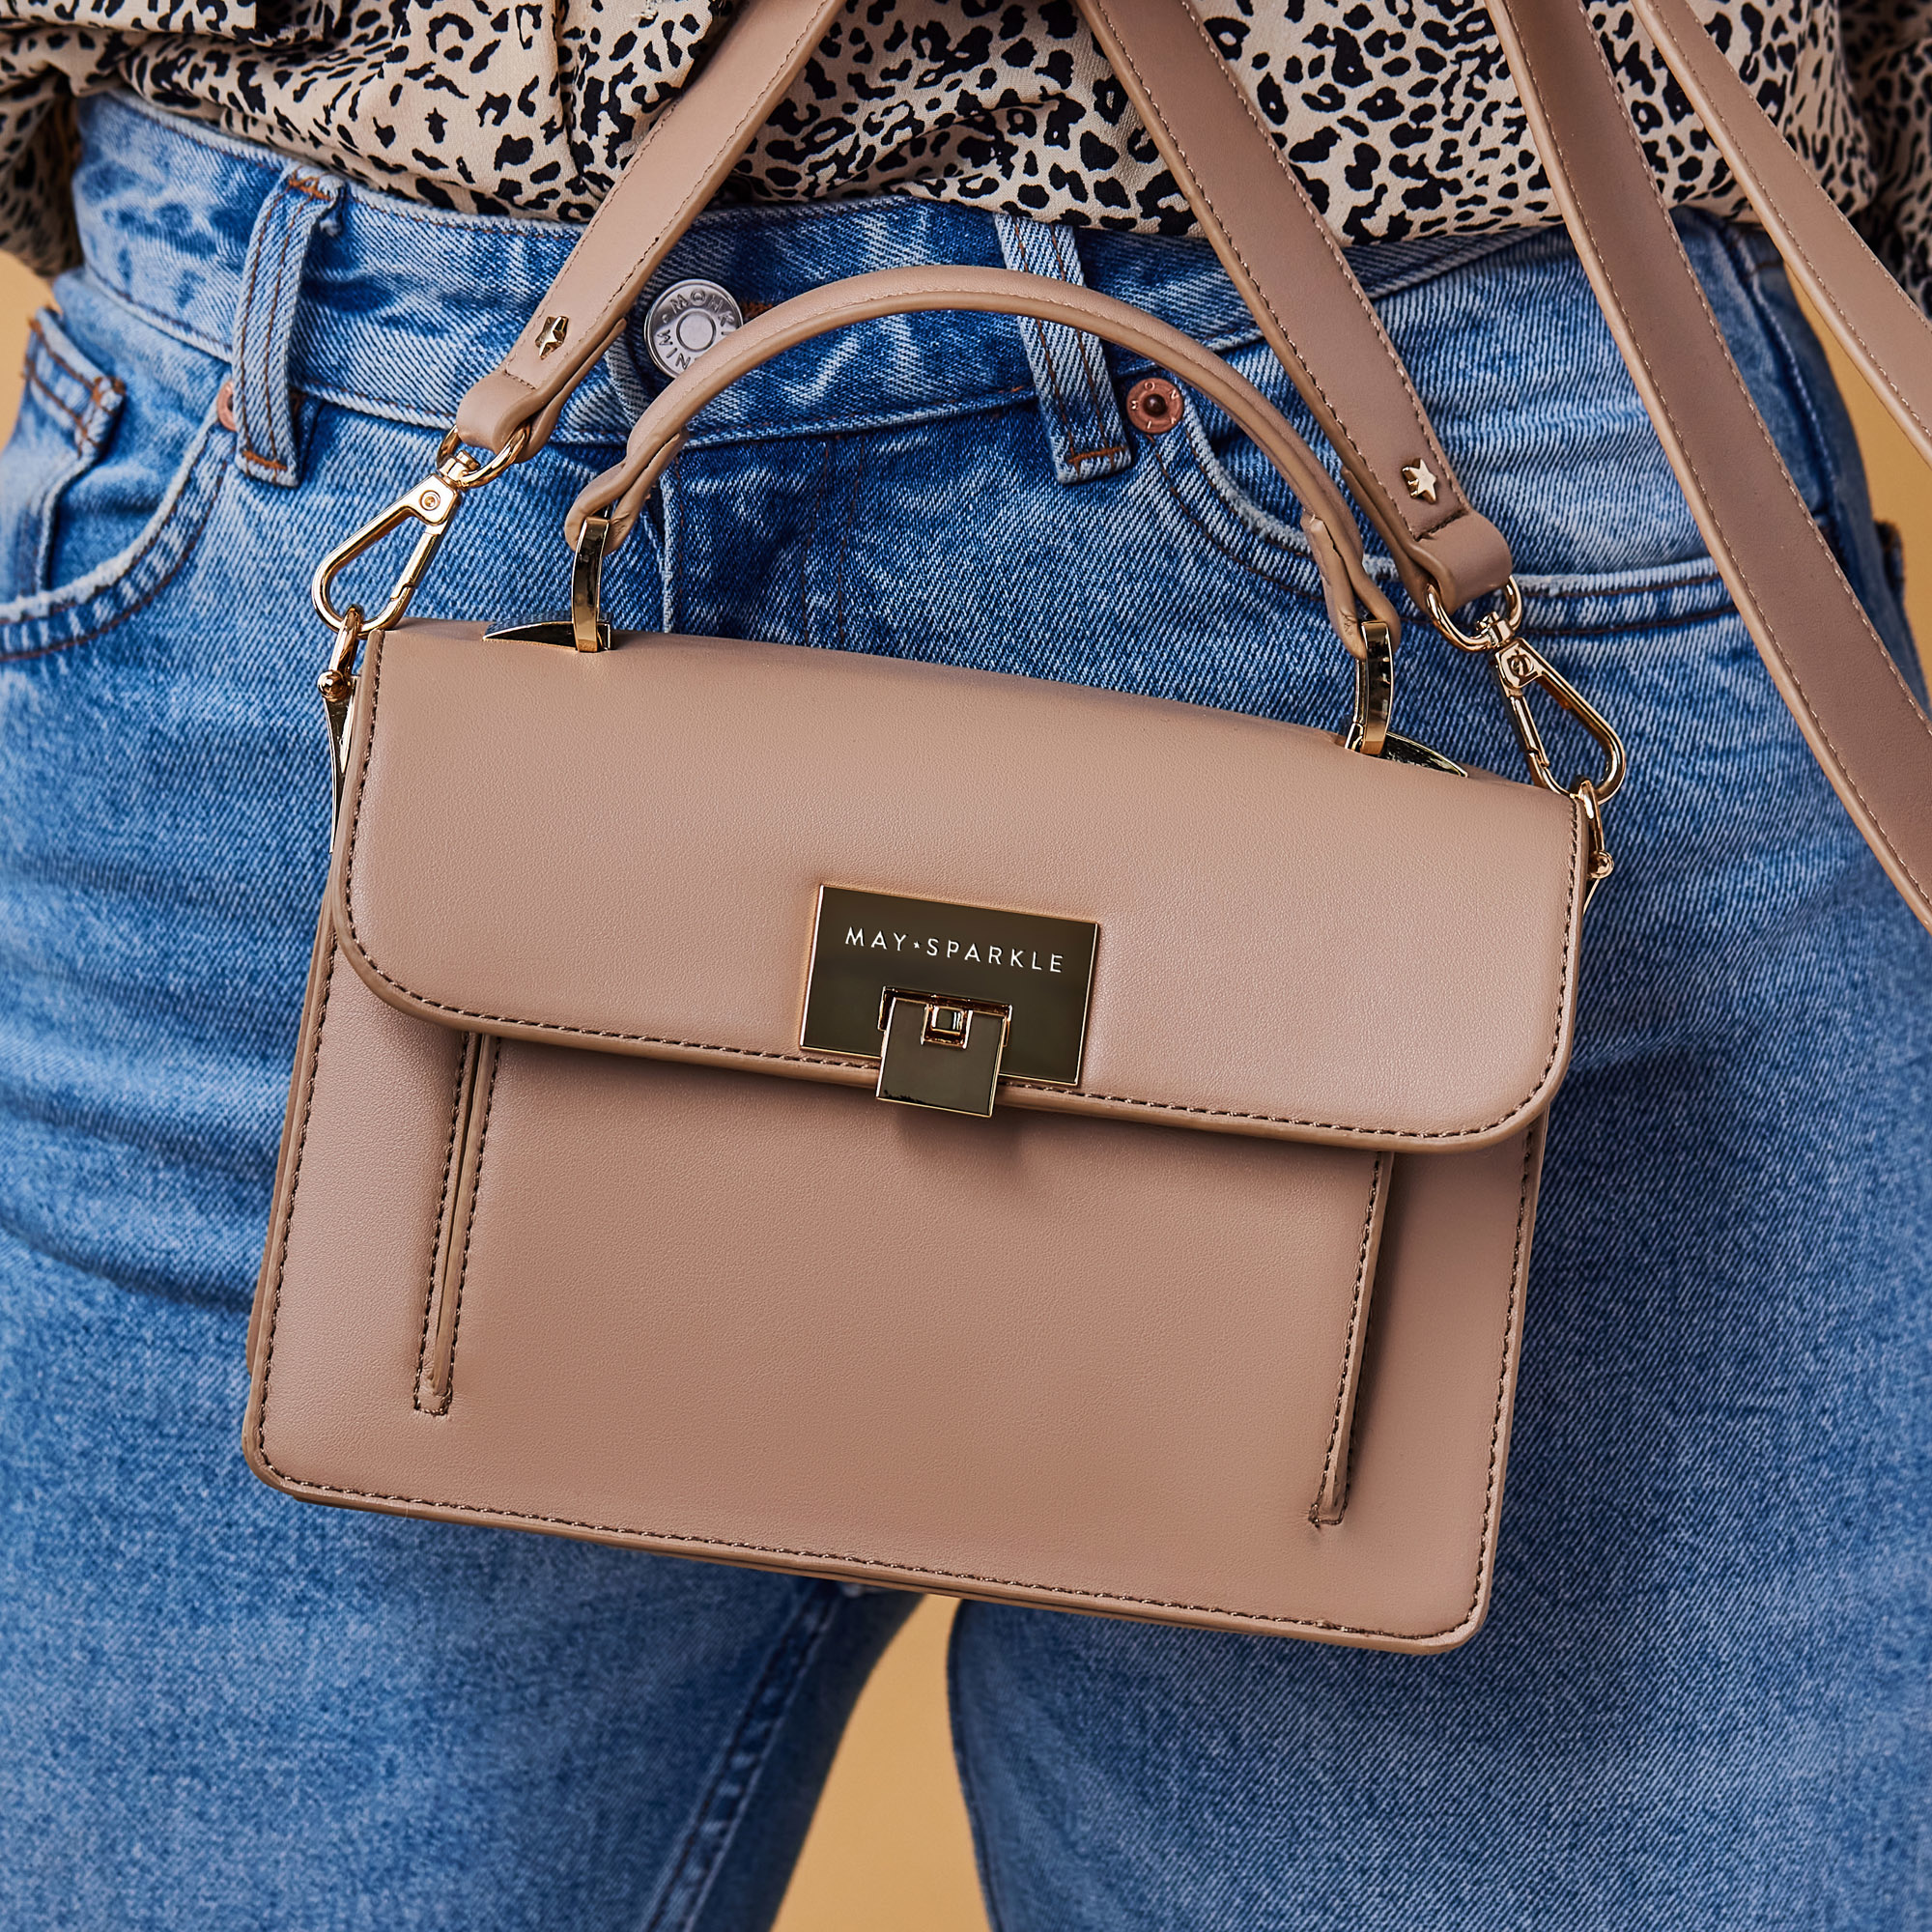 May Sparkle The Daily taupe handbag